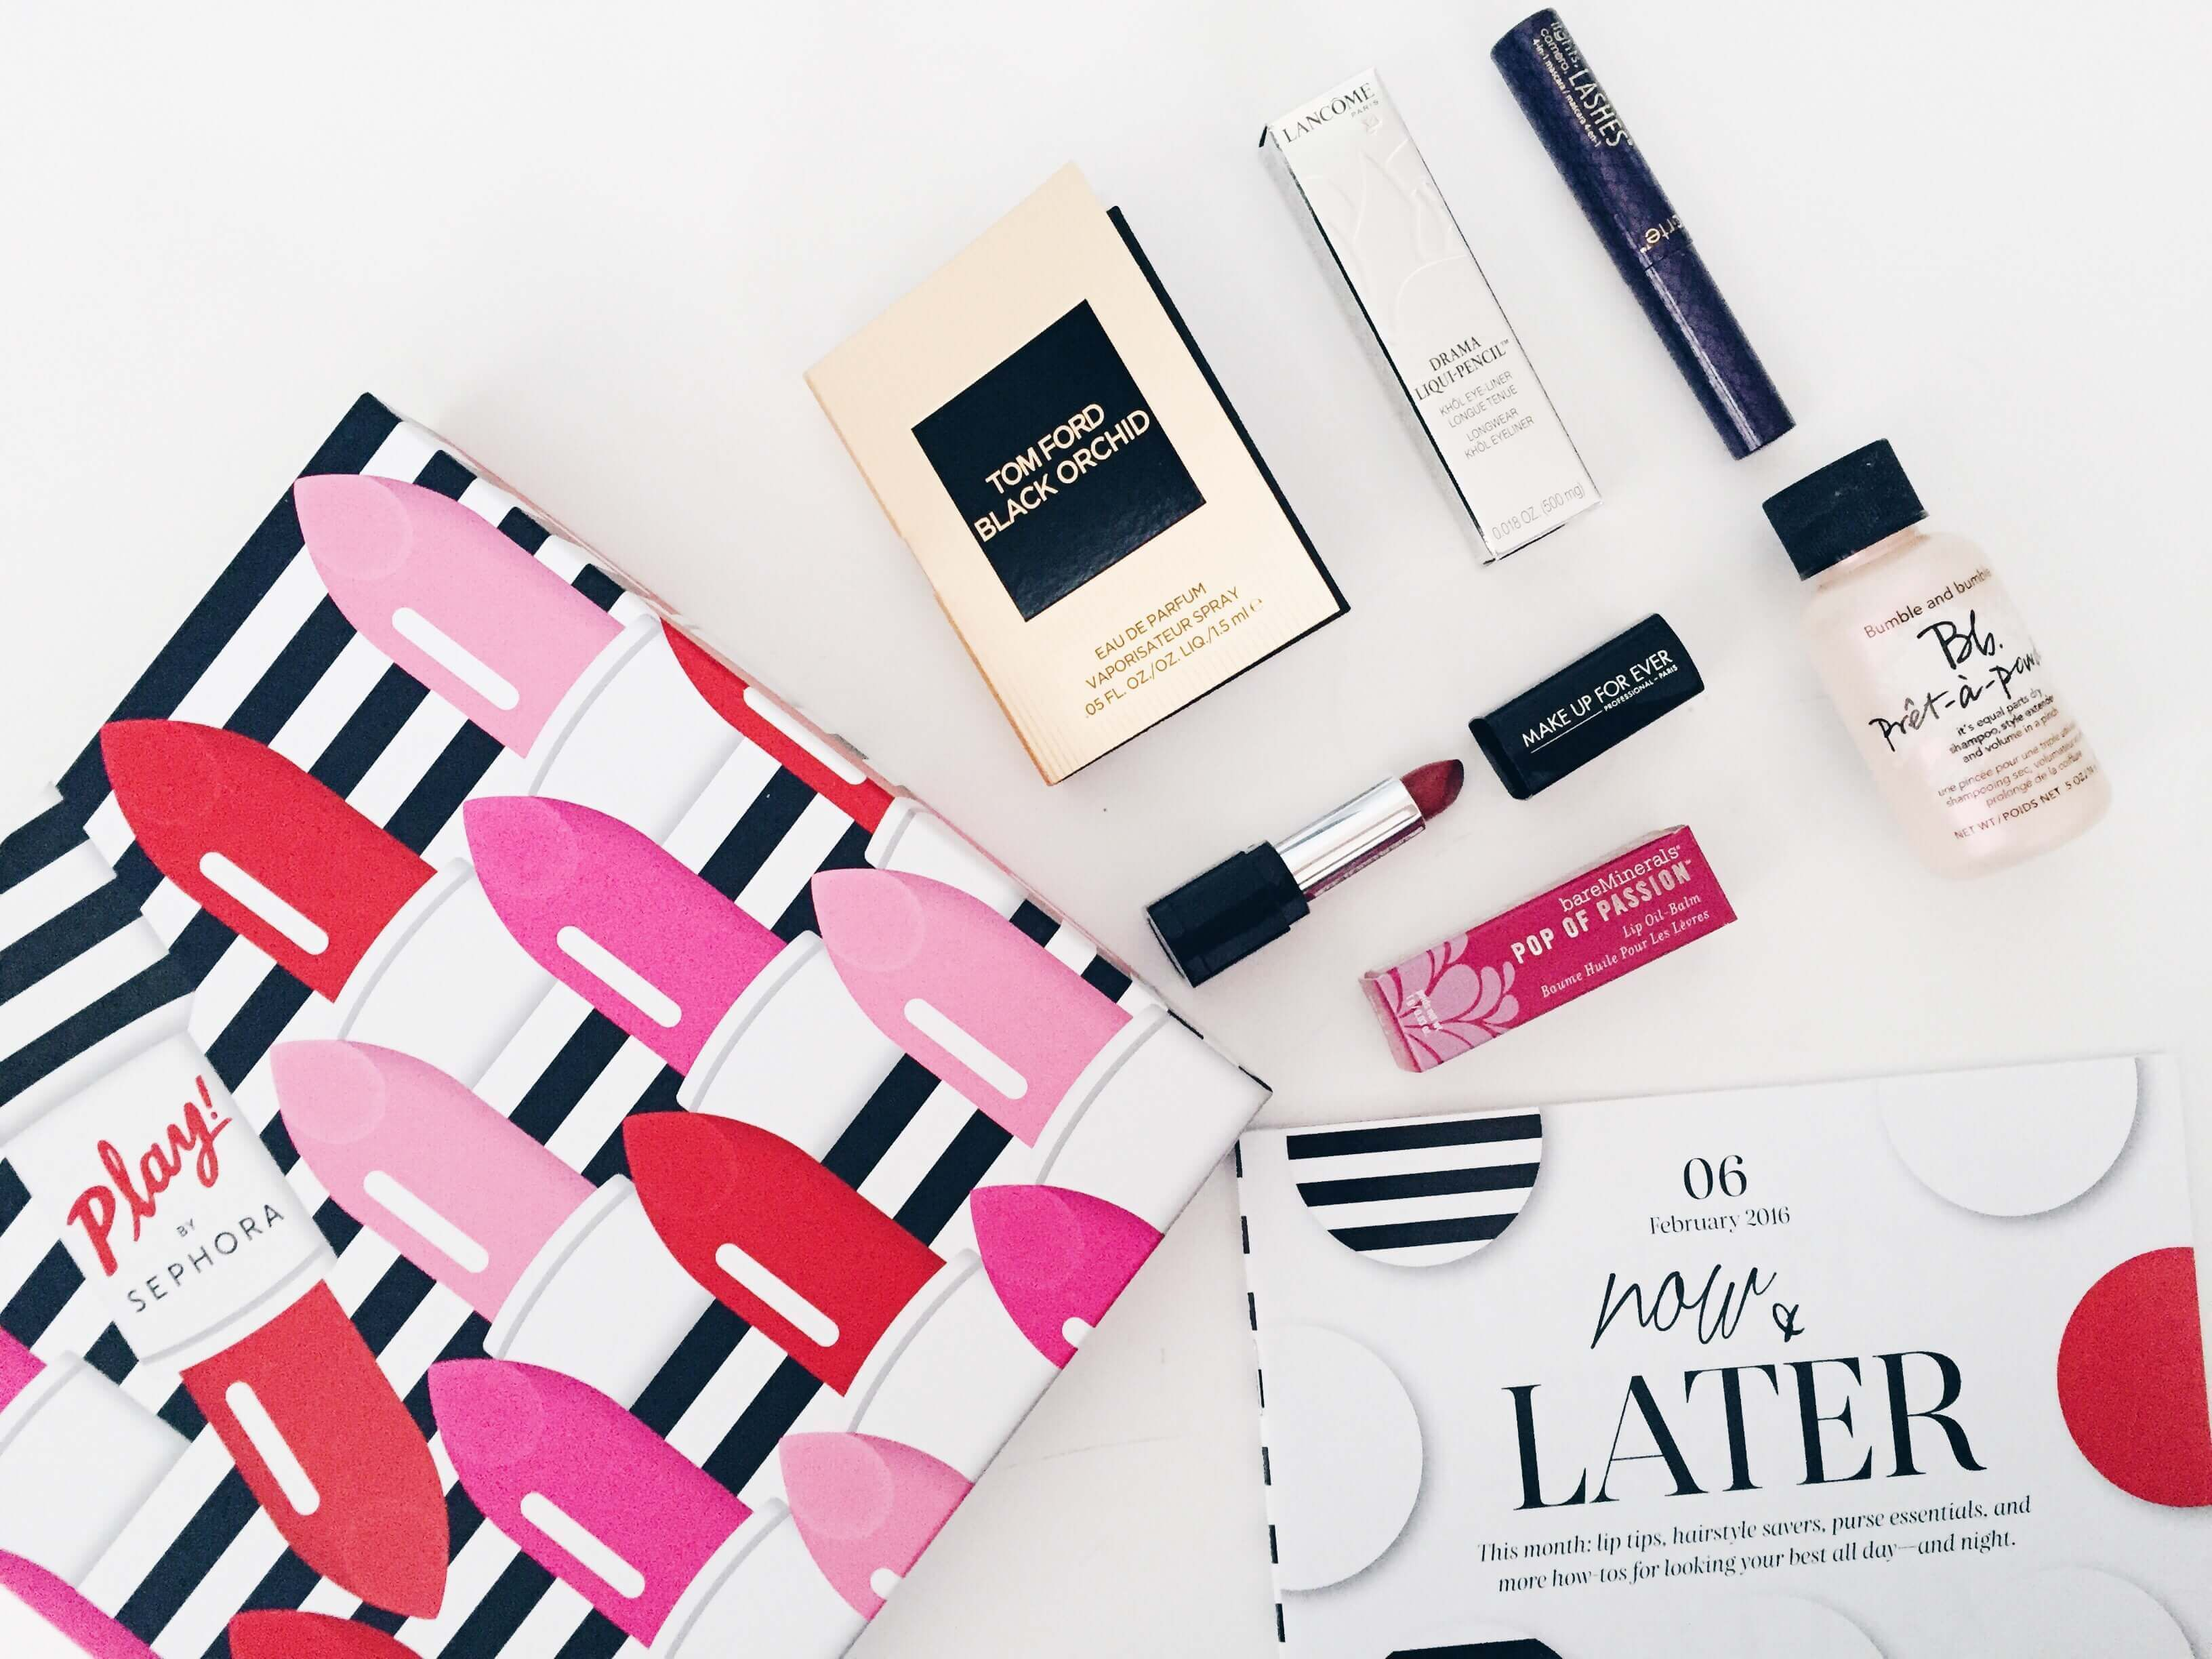 Here are the 24 best makeup and beauty box subscriptions